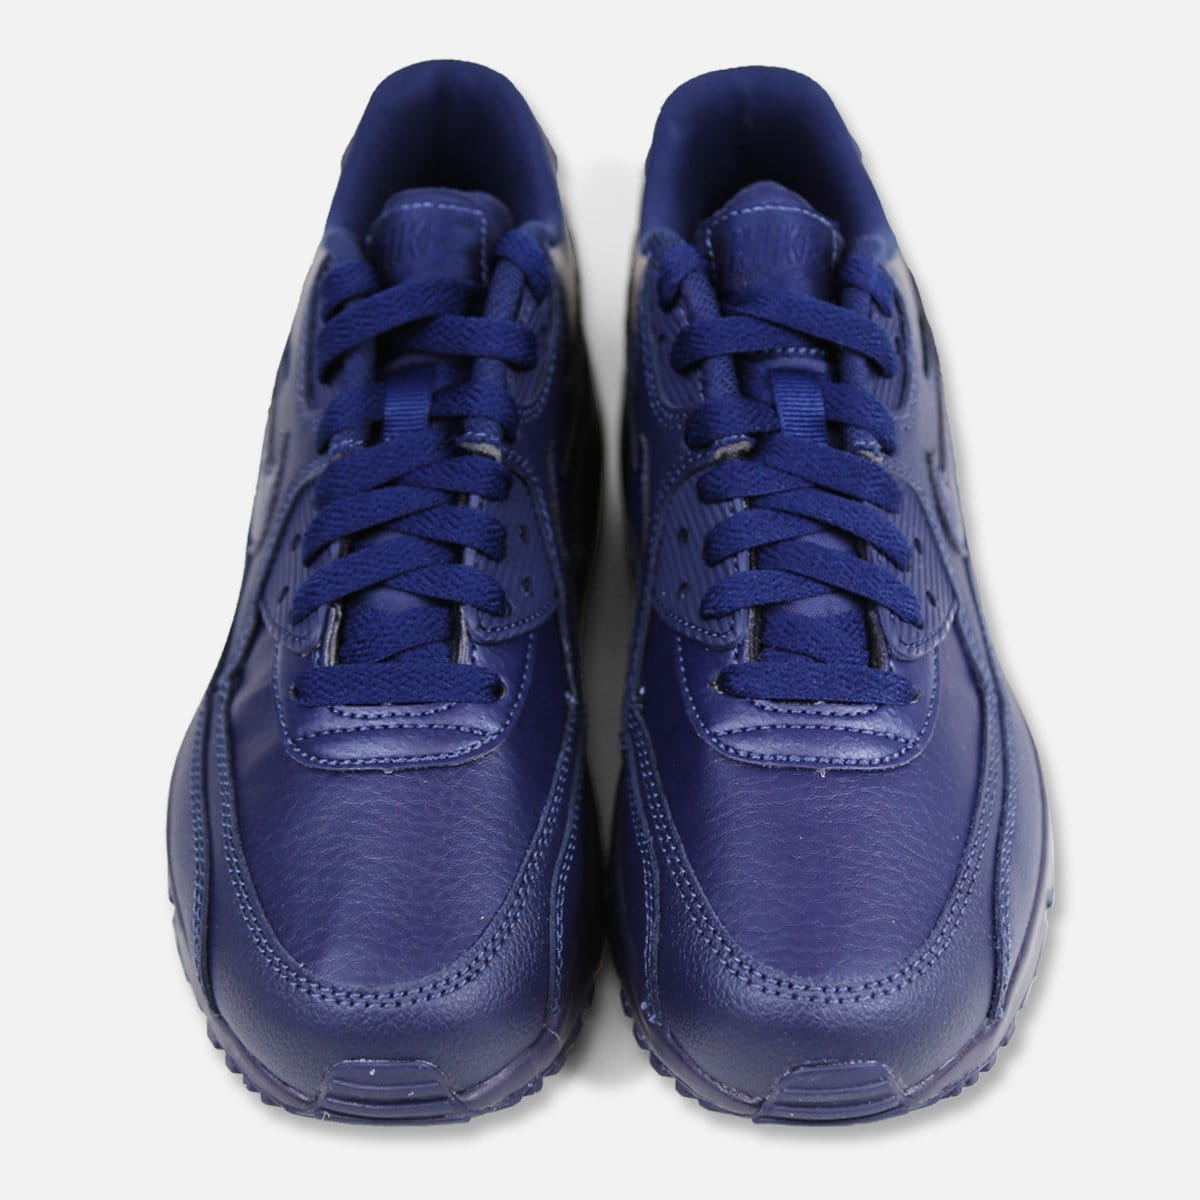 RUVilla.com is where to buy the Nike Air Max 90 Leather Grade-School (Obsidian)!